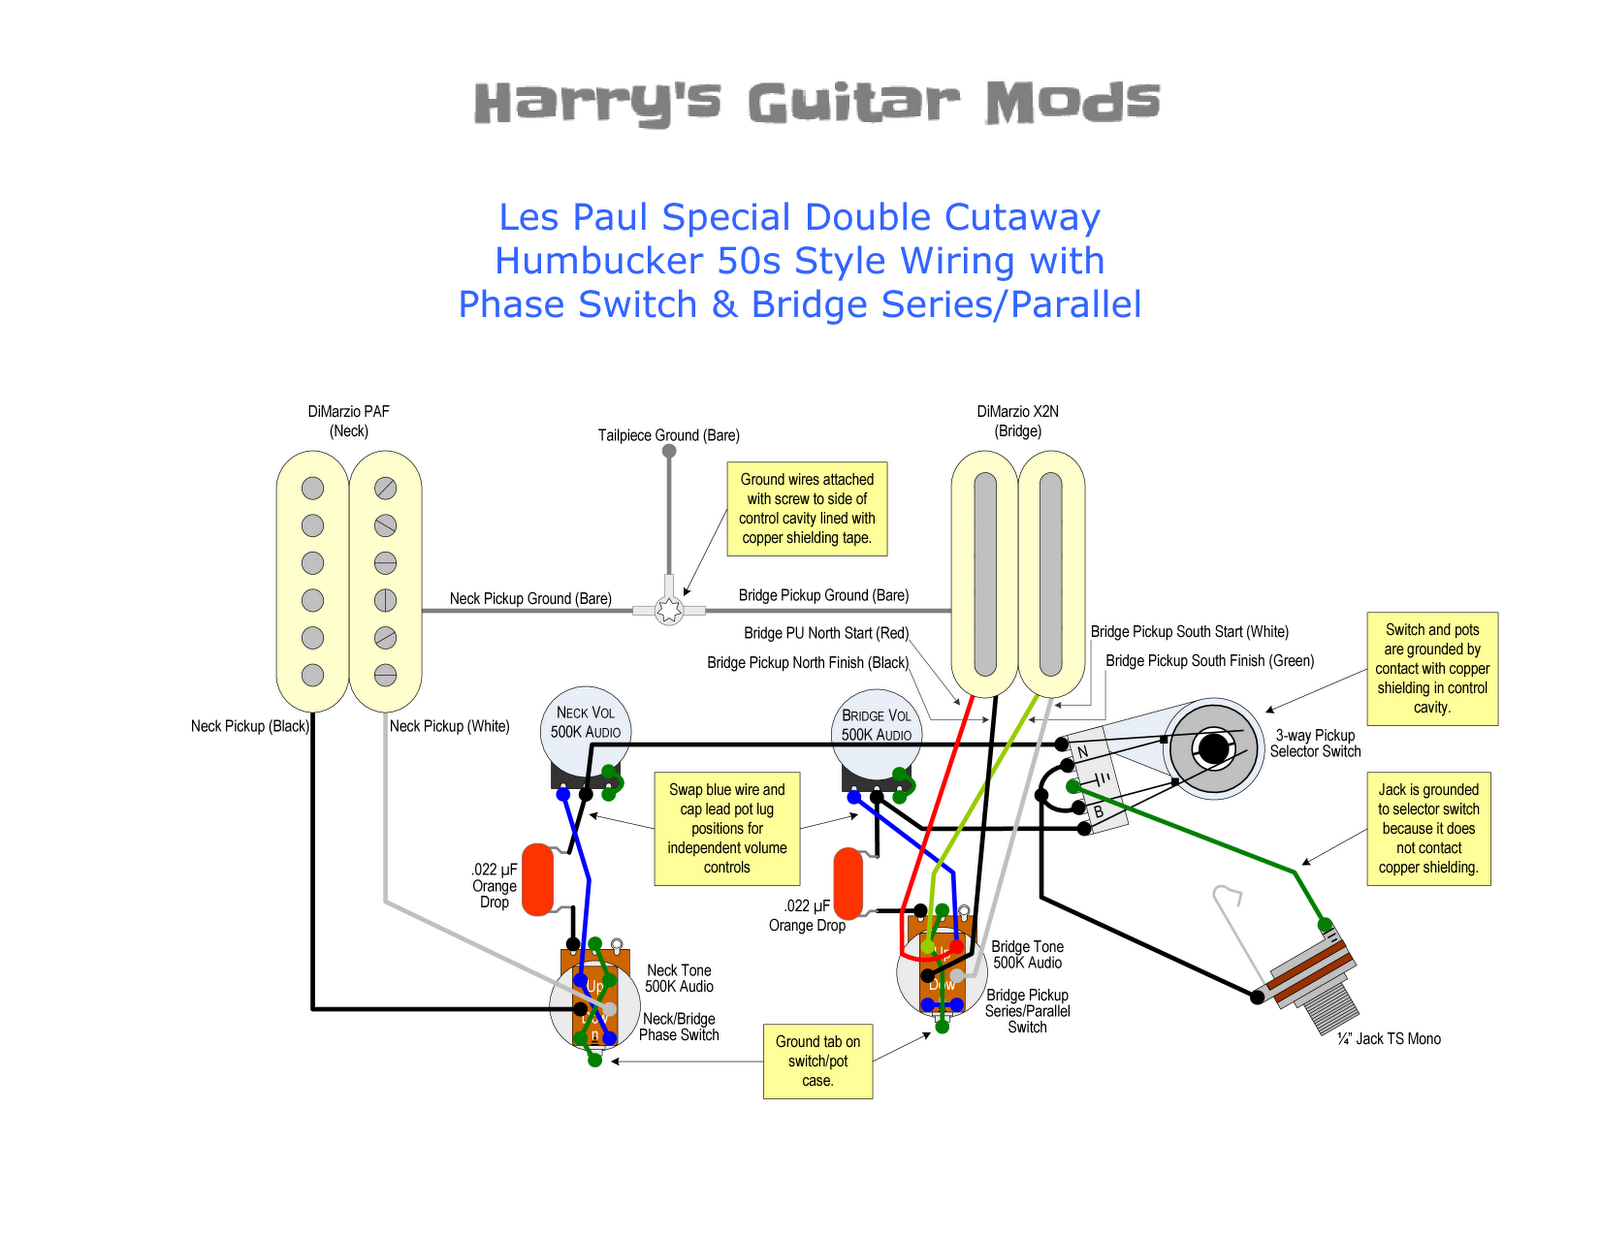 LPS+Wiring+Diagram harry's guitar mods controls wiring upgrade push-push pot wiring diagram at fashall.co